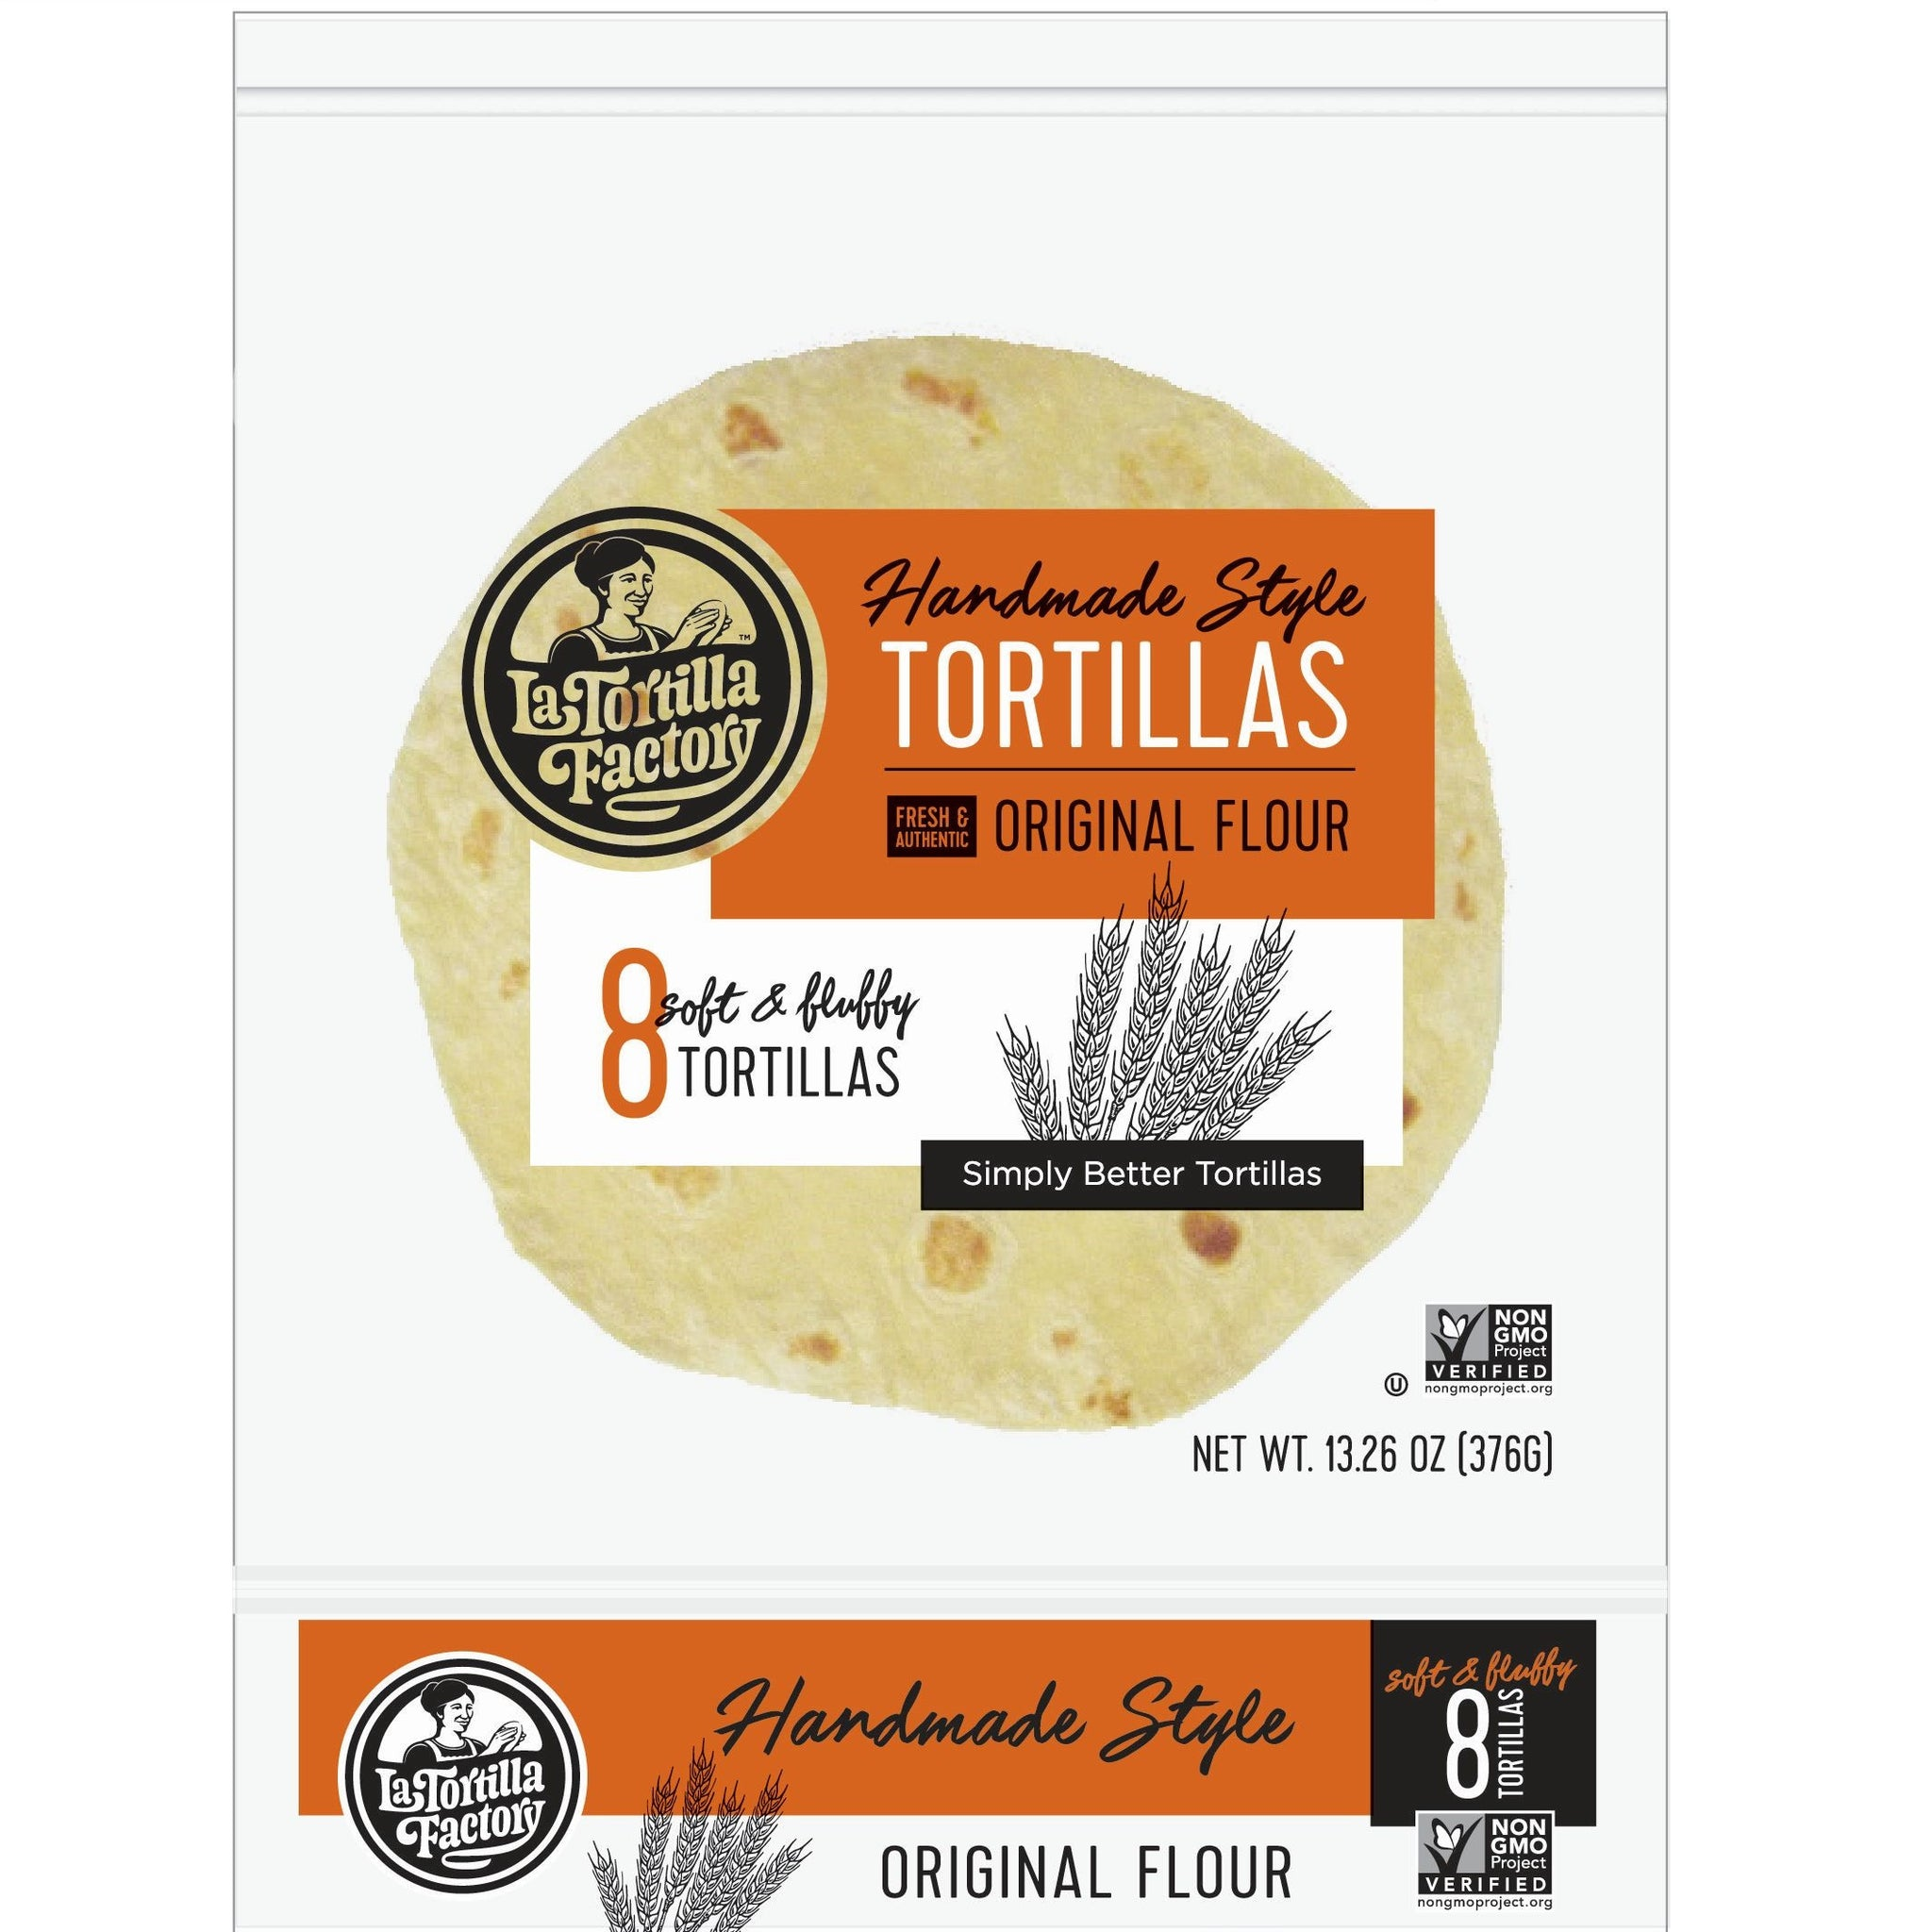 La Tortilla Factory Non-GMO Hand Made Style Tortillas, Original Flour, 8/pack (12 packs/case)